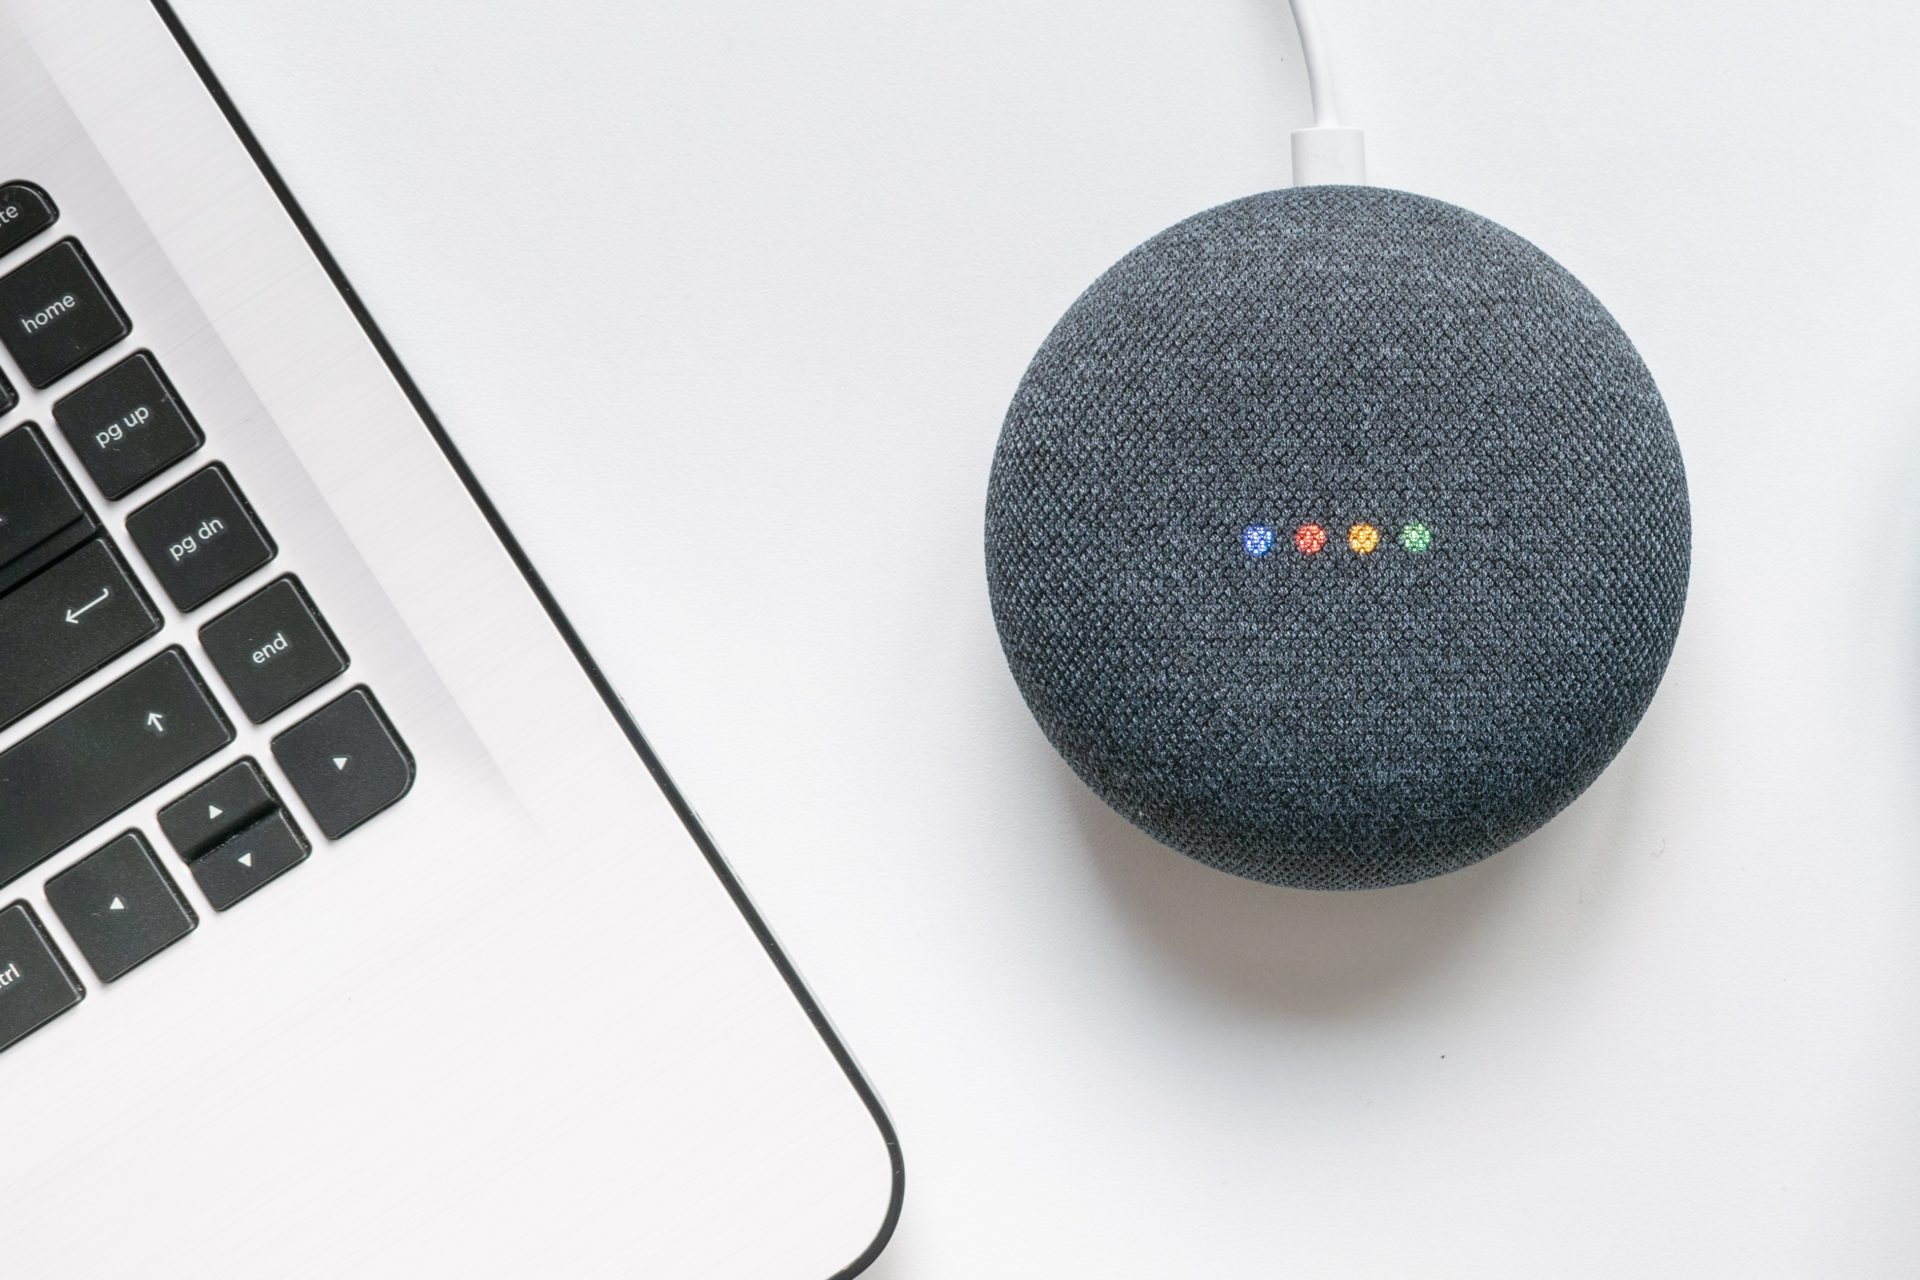 Google Home medical app aids physicians during surgery